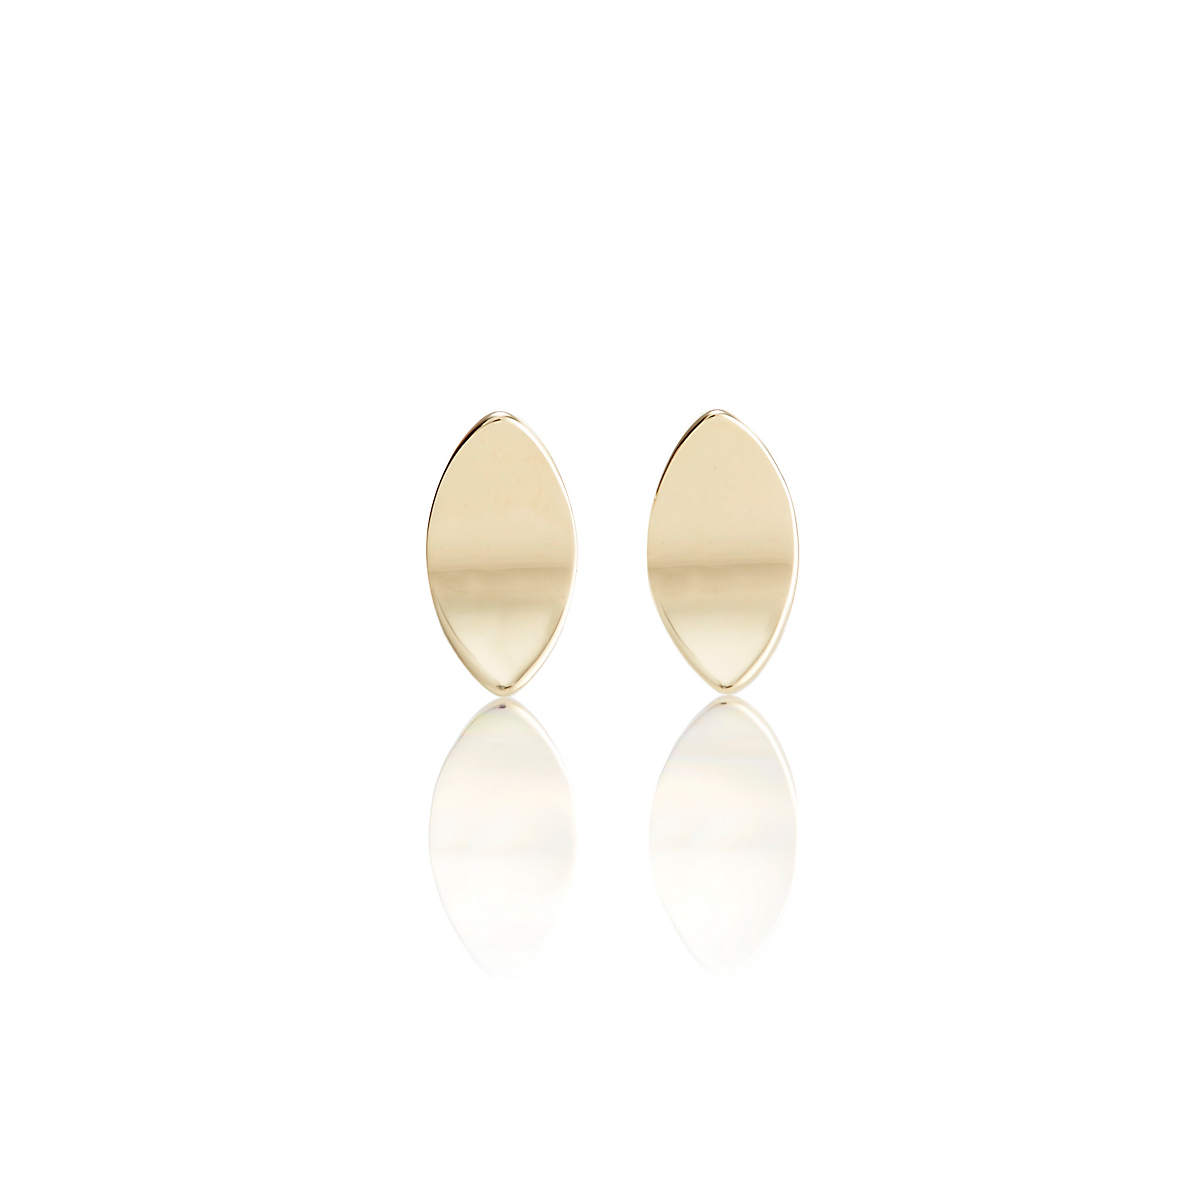 Gump's Gold Marquise Concave Stud Earrings